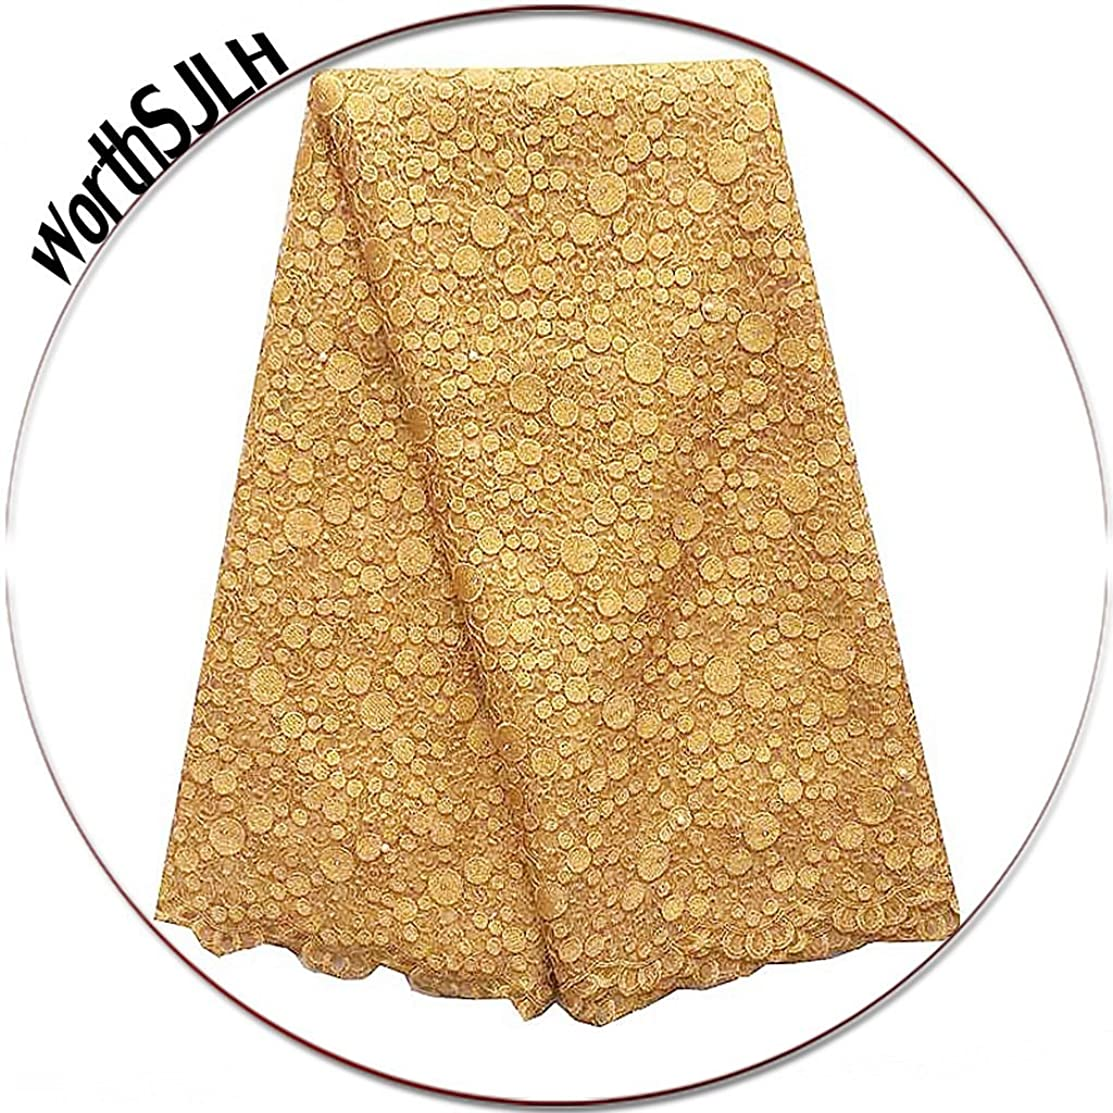 WorthSJLH 5 Yards African Lace Fabric 2018 Gold Nigerian French Lace Fabric Bridal Guipure Cord Lace Fabric for Party LF827(Gold))